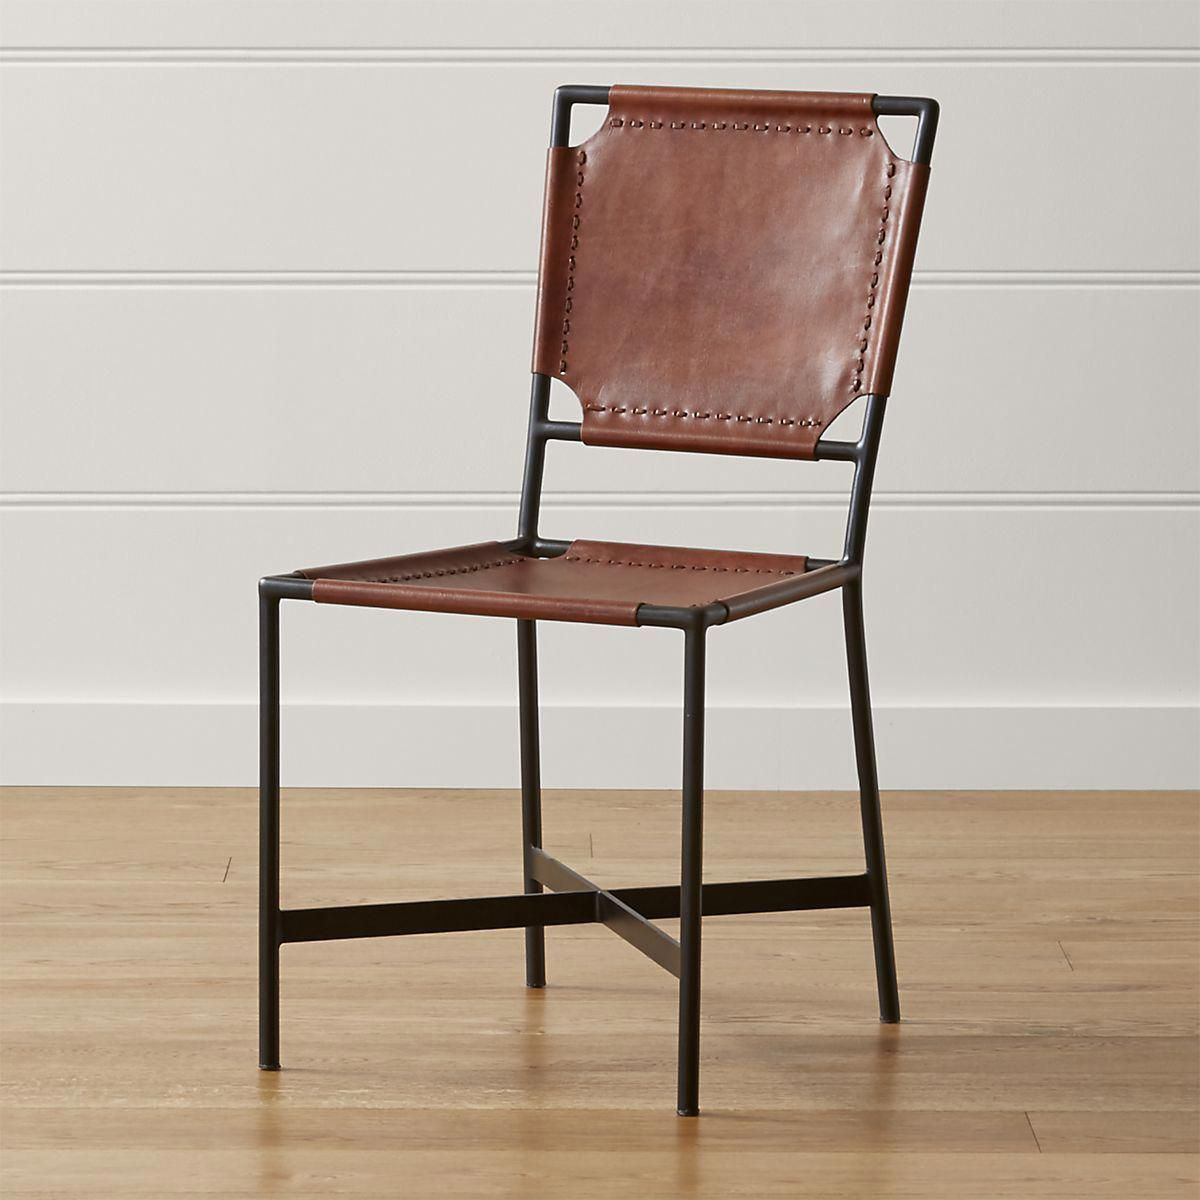 Crate And Barrel Rocking Chair Laredo Brown Leather Dining Chair Crate And Barrel